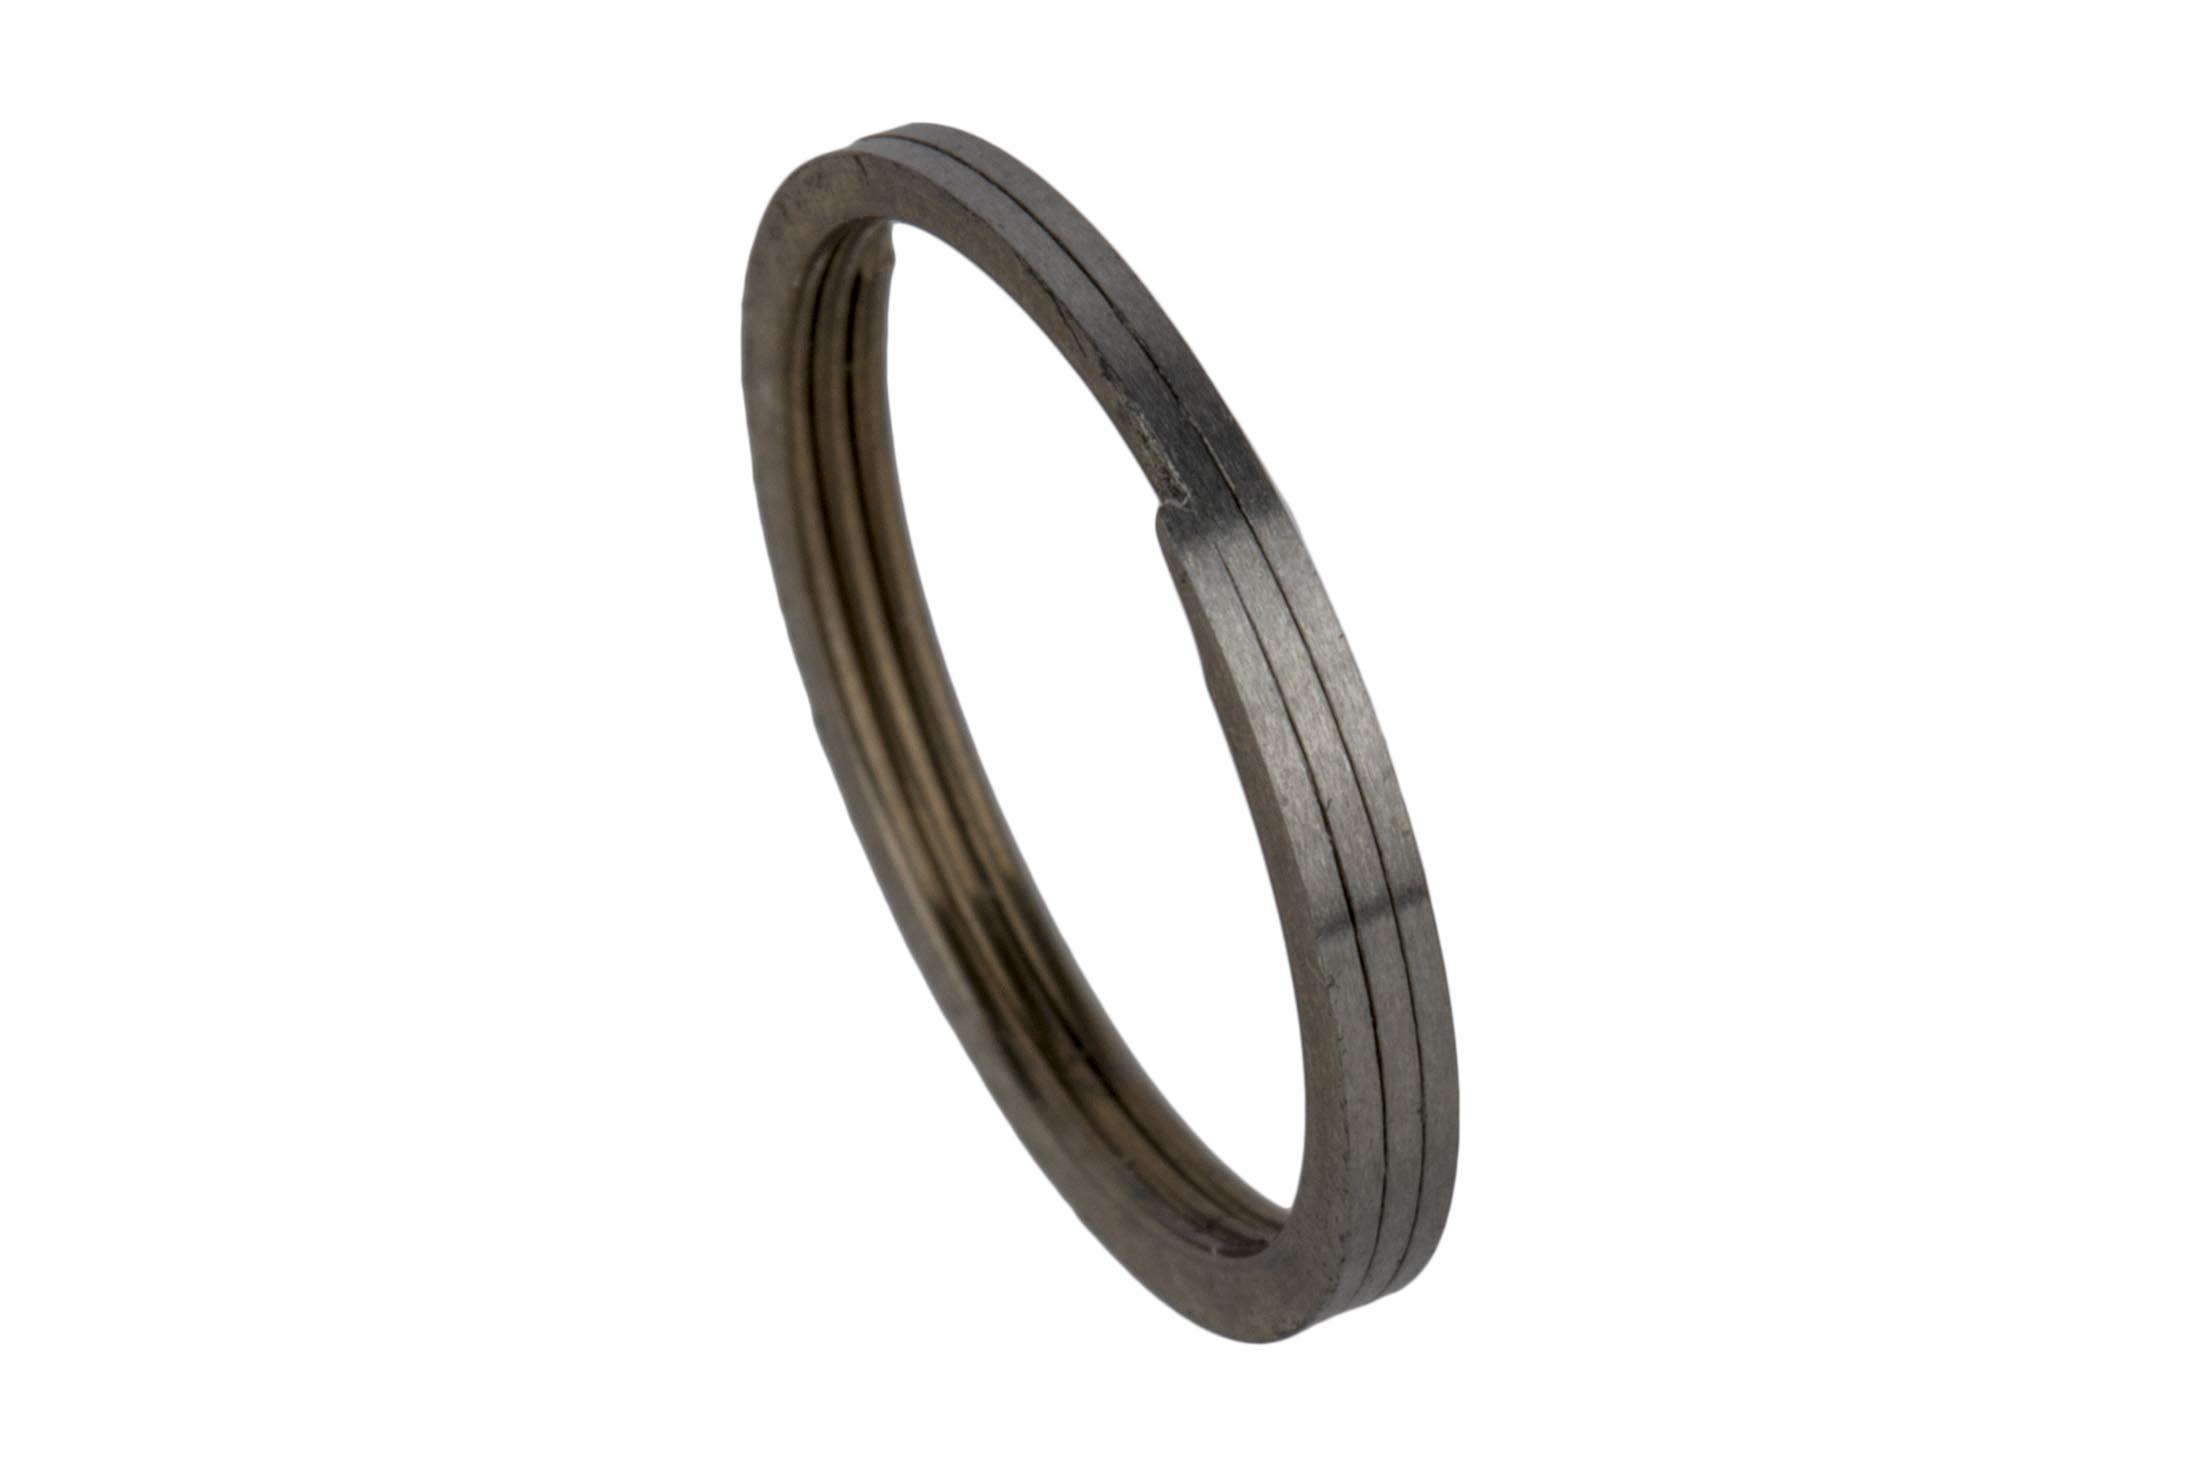 JP Enterprises .223 Enhanced one-piece gas ring provides optimal gas seal with reduced friction